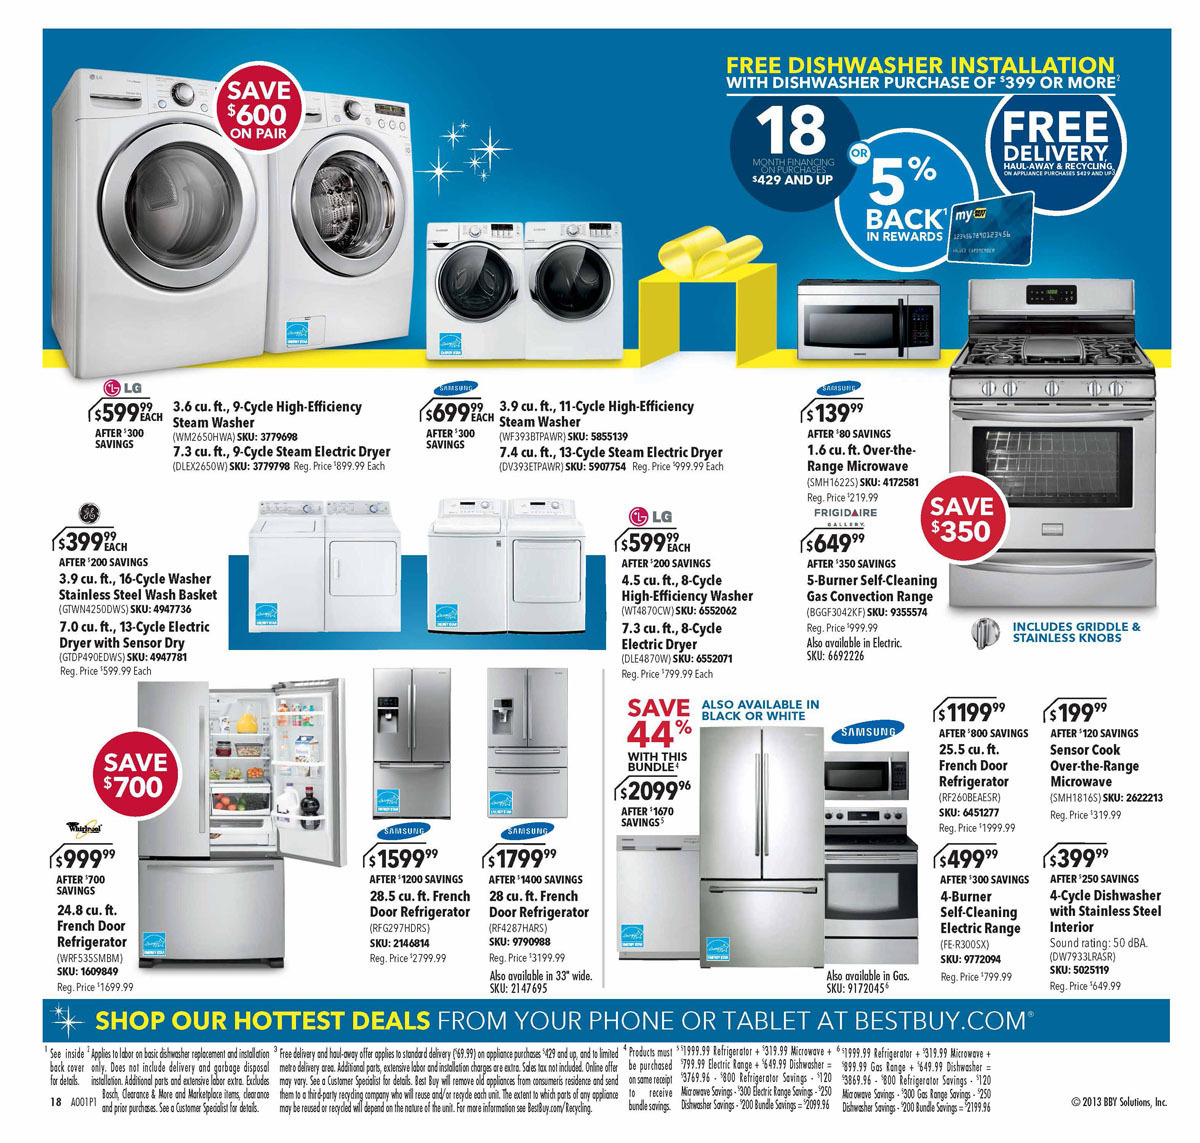 BestBuy_blackfriday2013_18